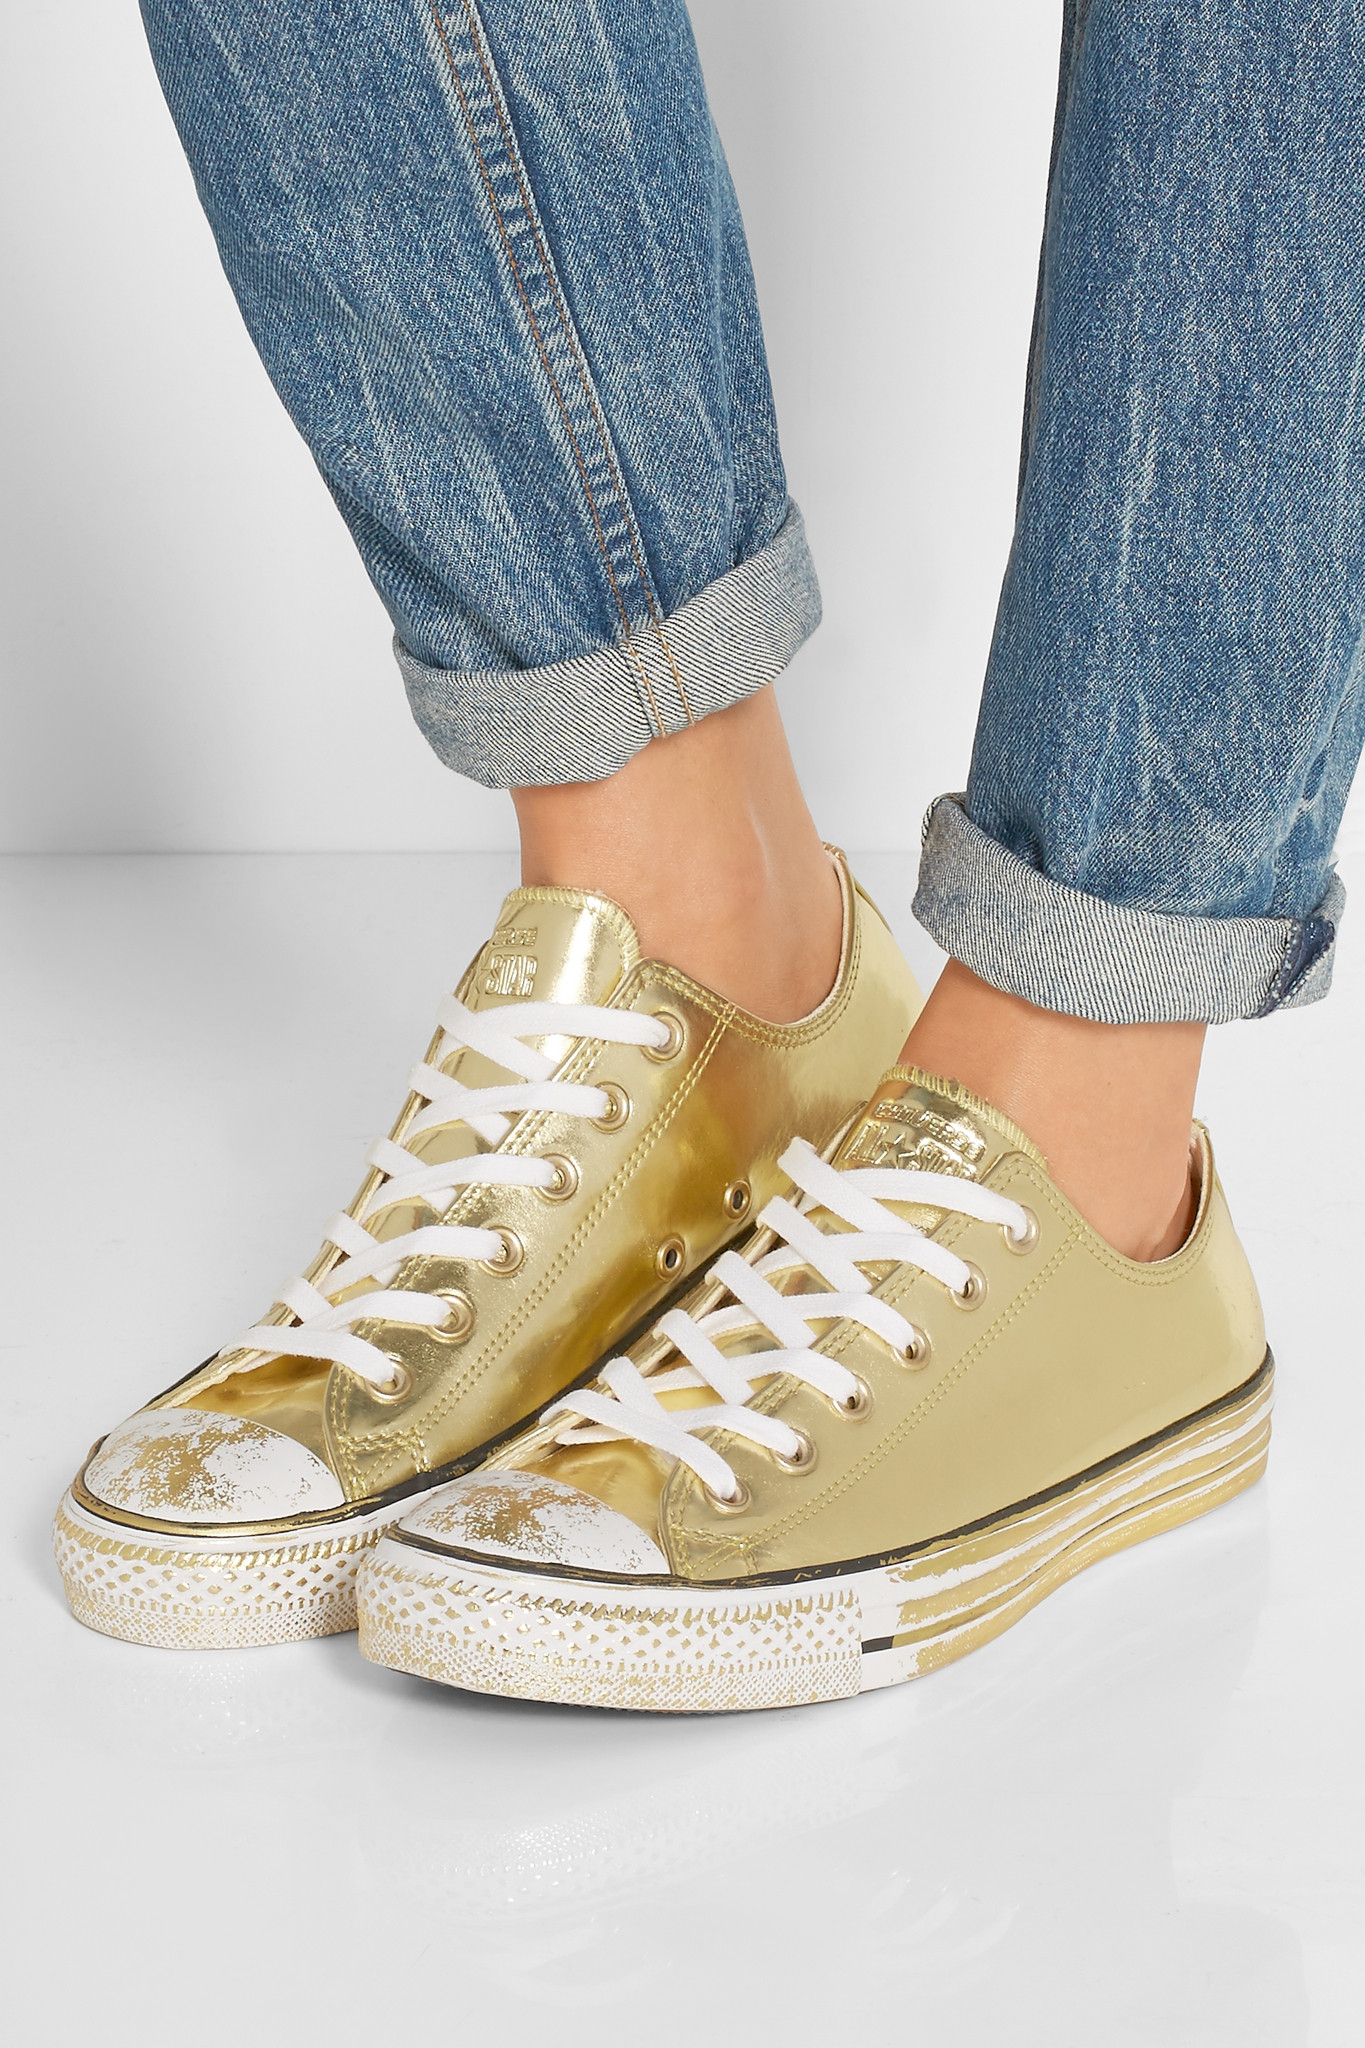 Converse Chuck Taylor All Star Chrome Metallic Leather